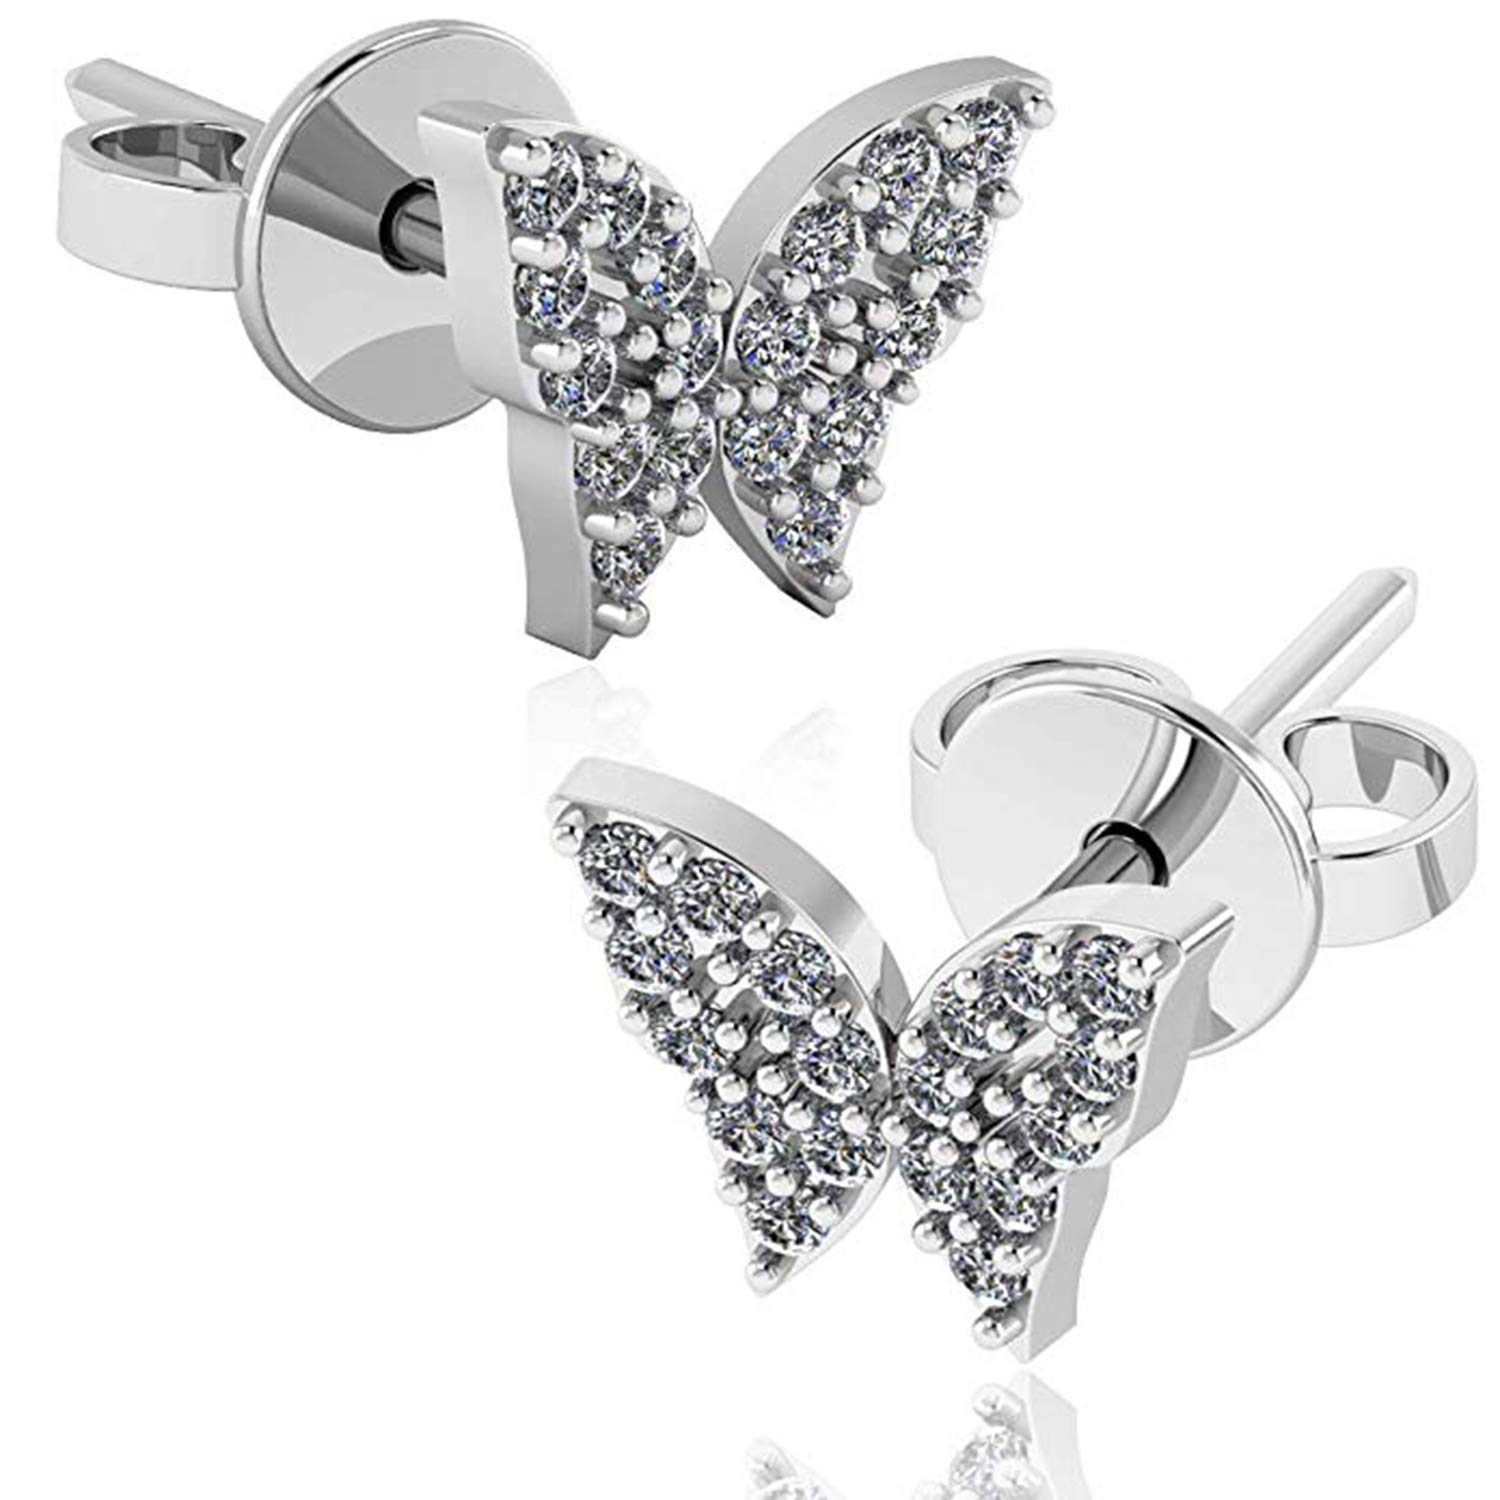 14K White Gold Plated Simulated Diamond Studded Earrings For Womens Girls Jewellery